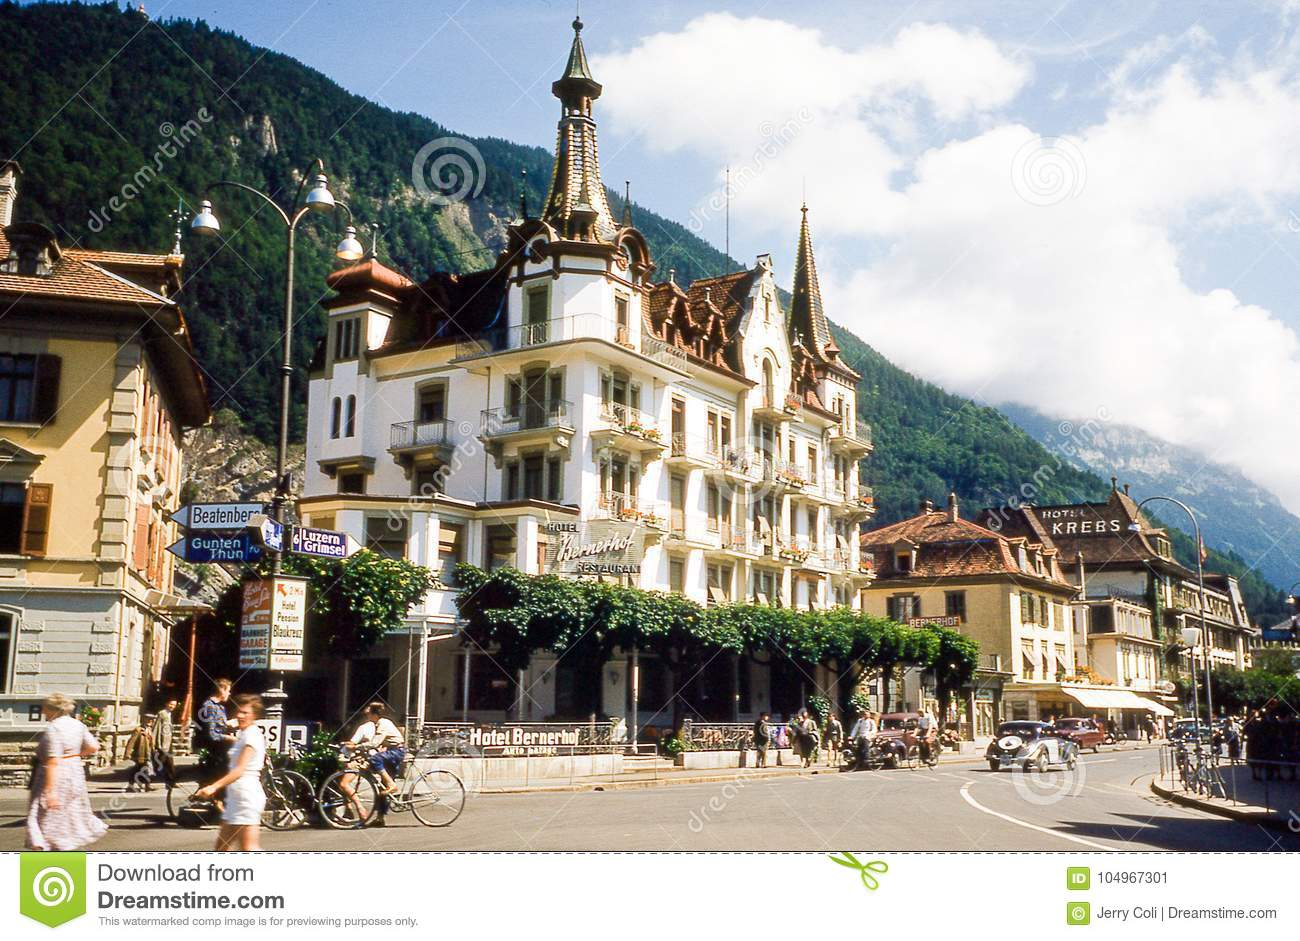 hotel bernerhofer interlaken switzerland editorial photo image of